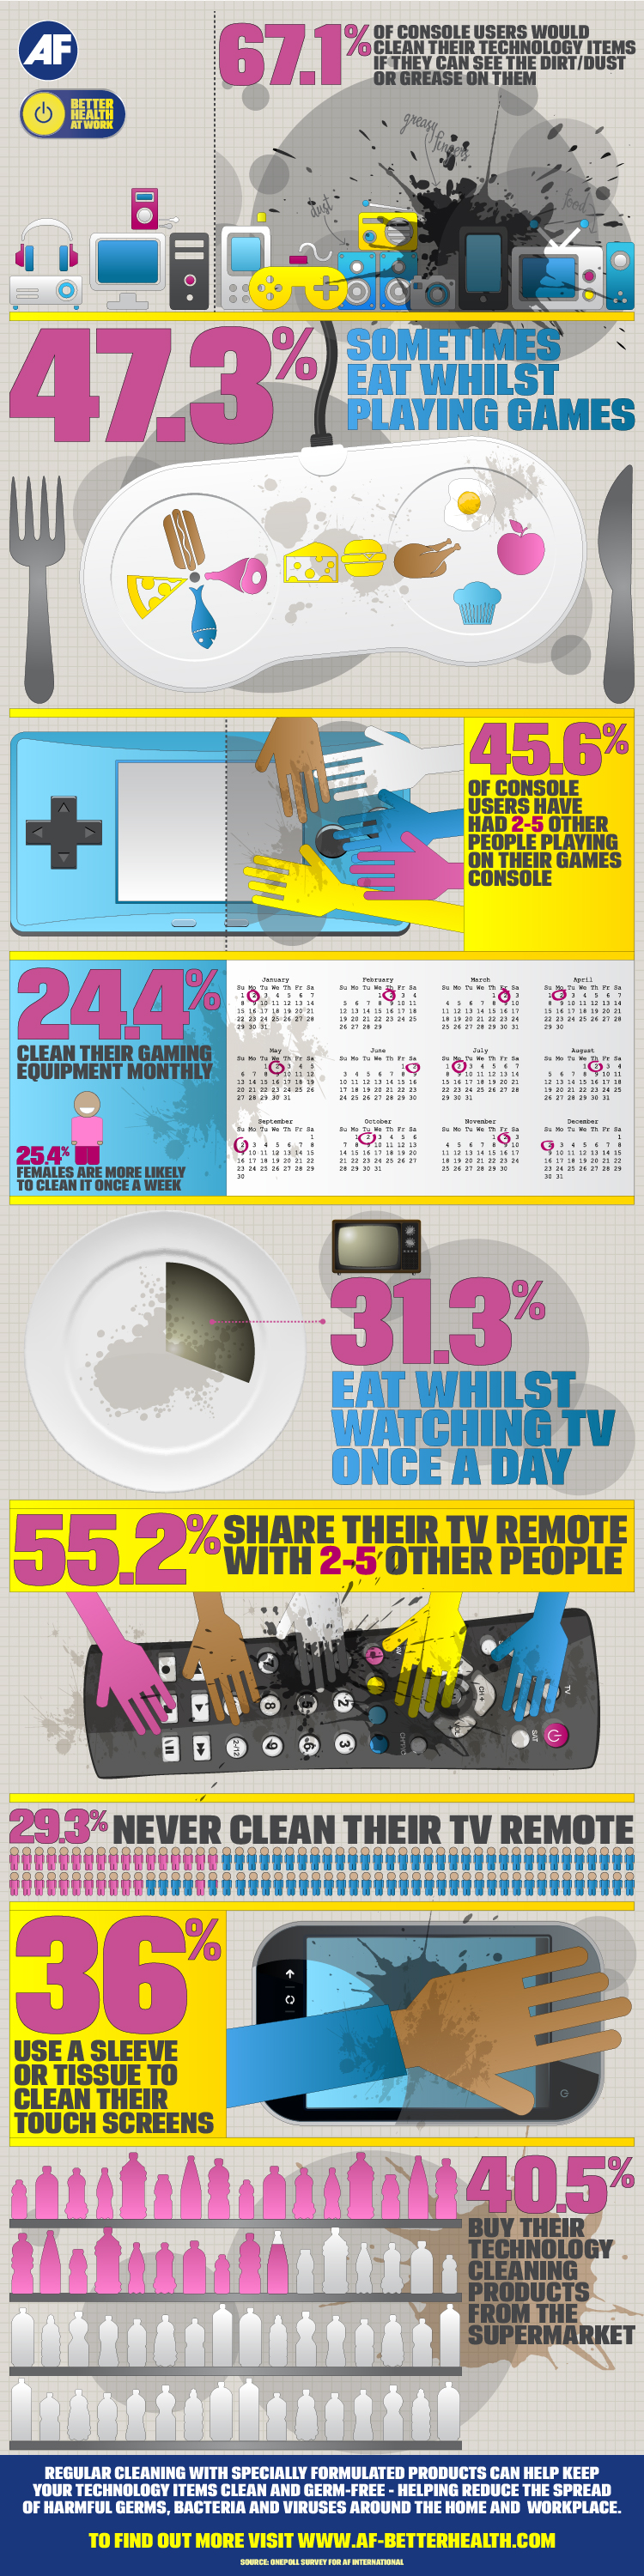 gamers-health-and-hygiene-infographic_5048a37a3f34d